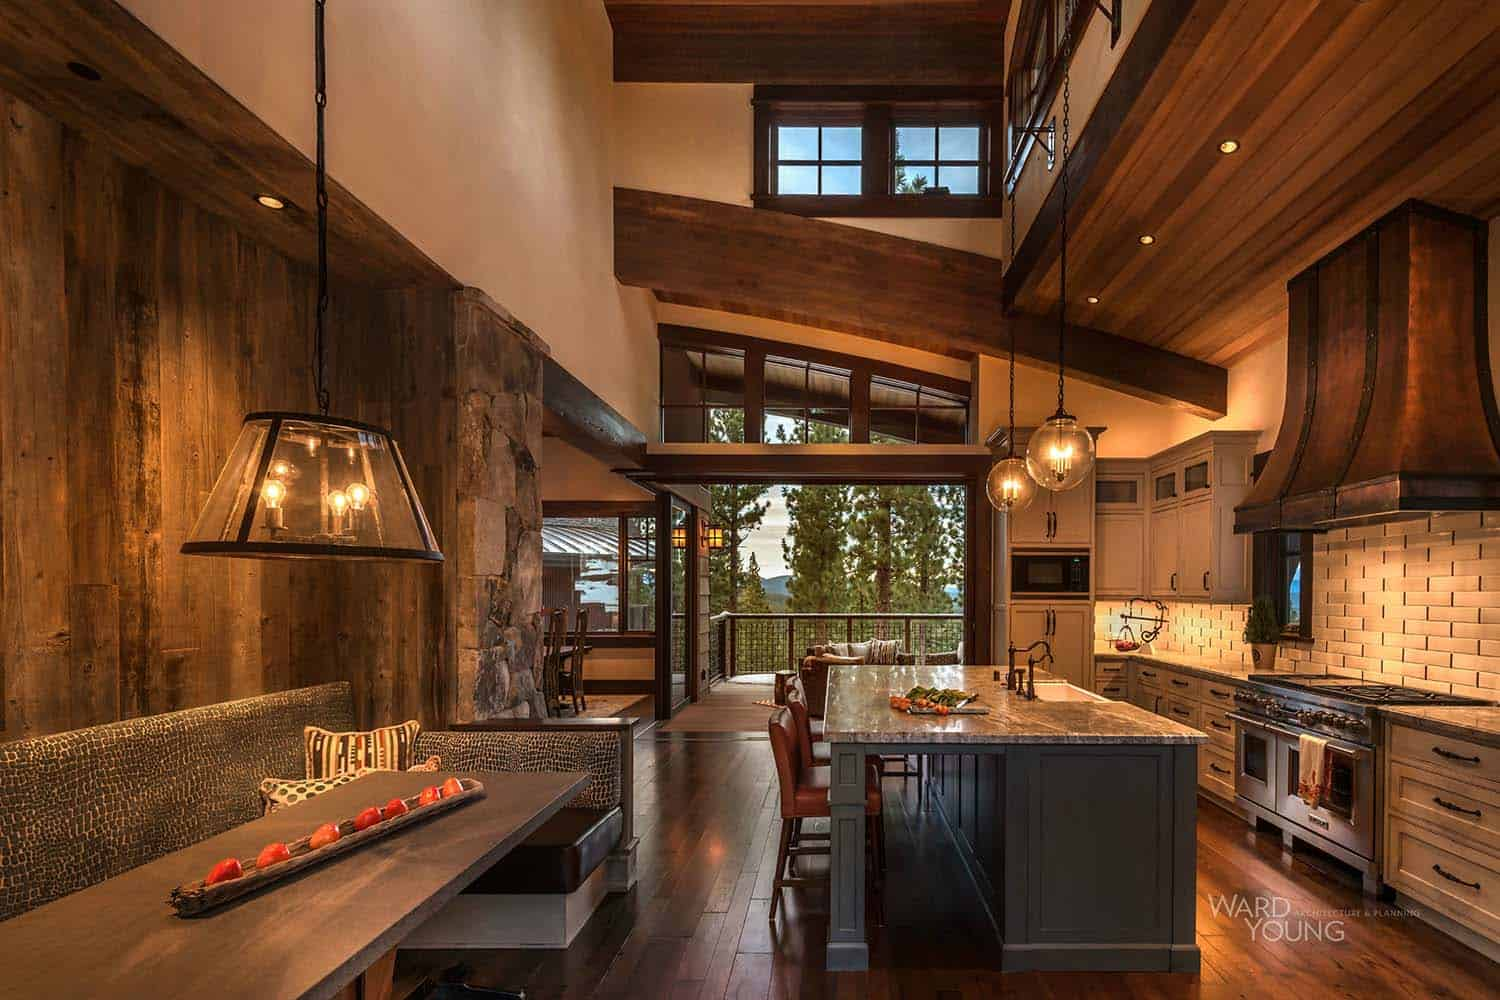 Lodge Style Home-Ward Young Architects-05-1 Kindesign.jpg